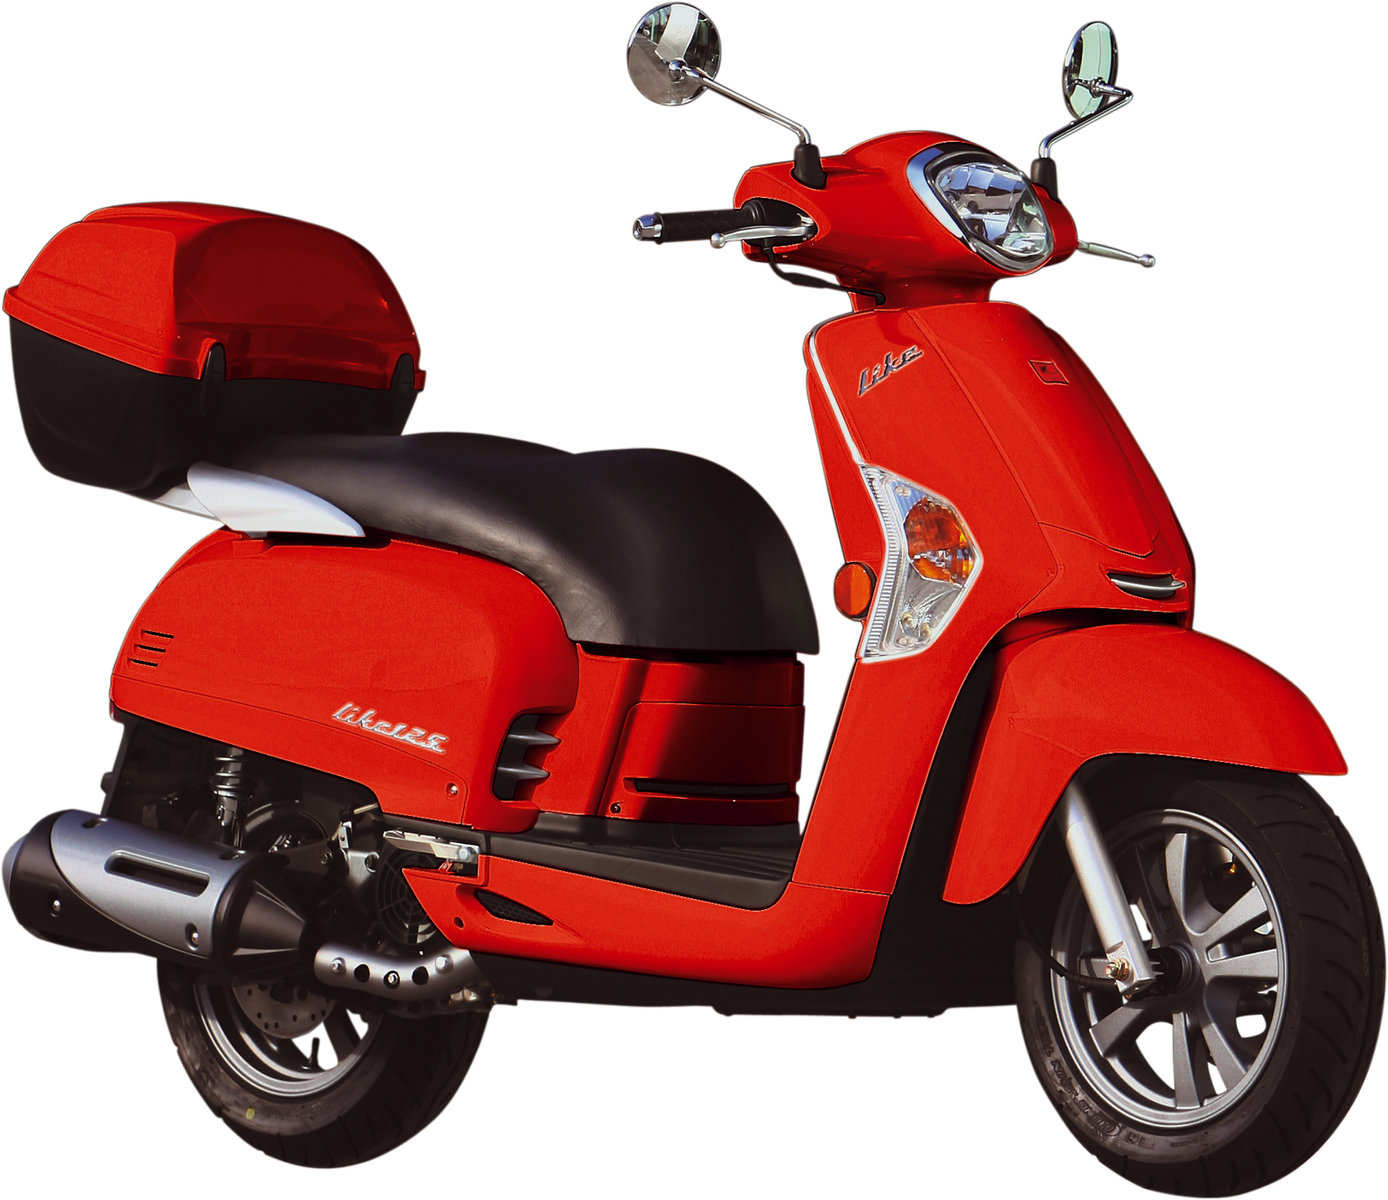 2010 kymco like 125 pics specs and information. Black Bedroom Furniture Sets. Home Design Ideas